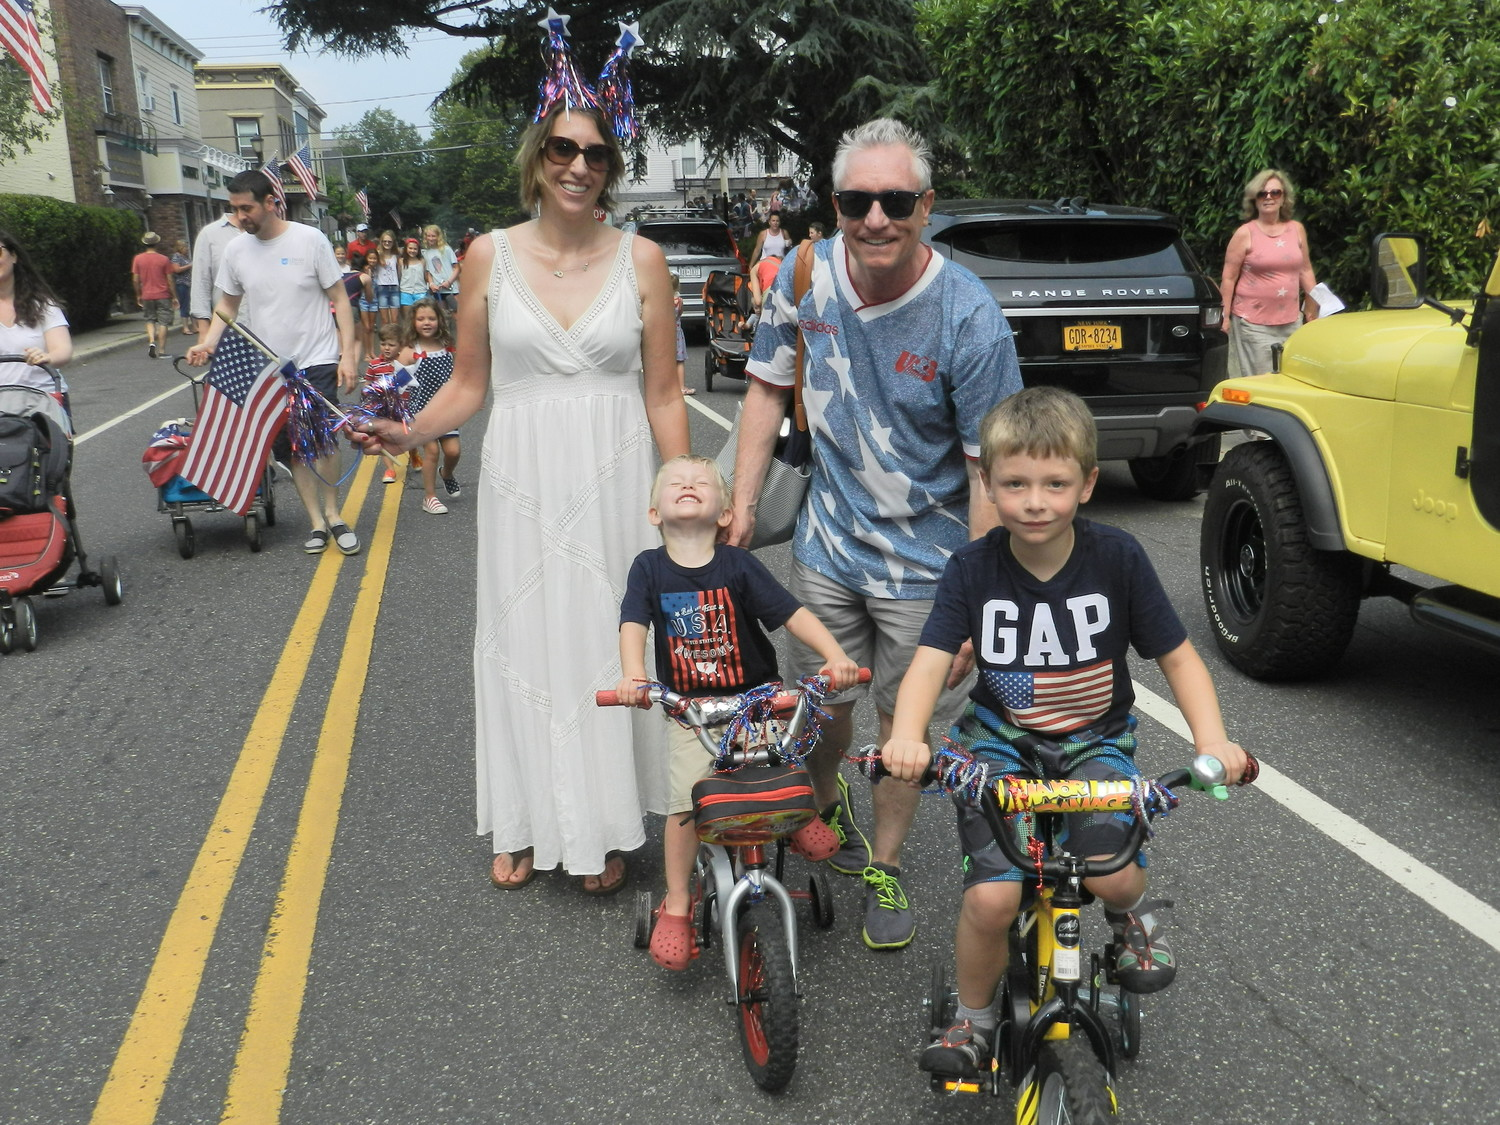 New to the village, the Valli family took part in the Fourth of July celebrations to get acquainted with their new neighbors. Veronica, Luke, 3, Rob, and Xavier 6, dressed for the occasion.